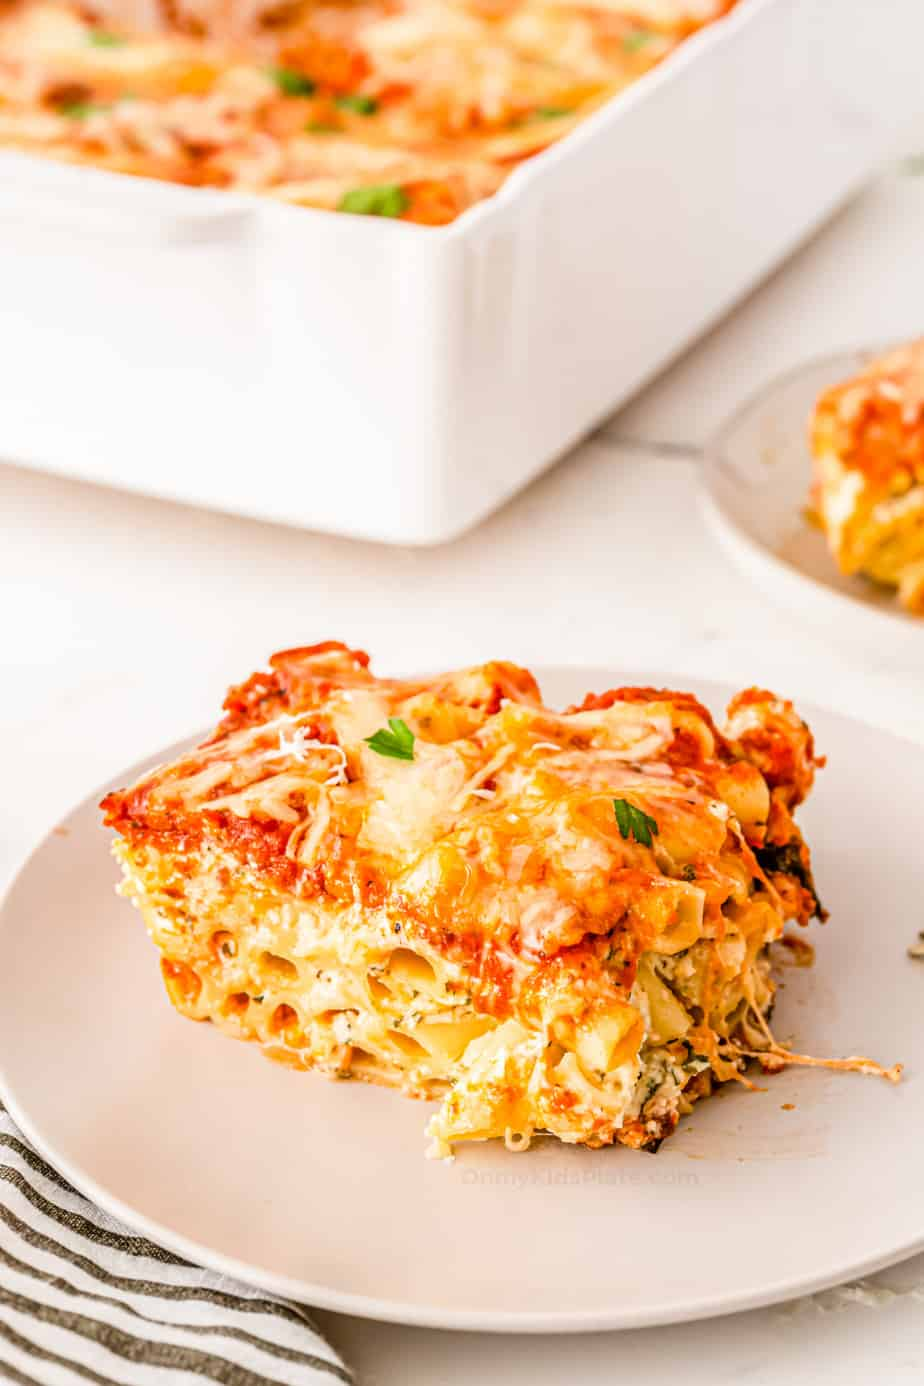 A plate full of cheesy baked ziti with a baking pan full of pasta in the background.